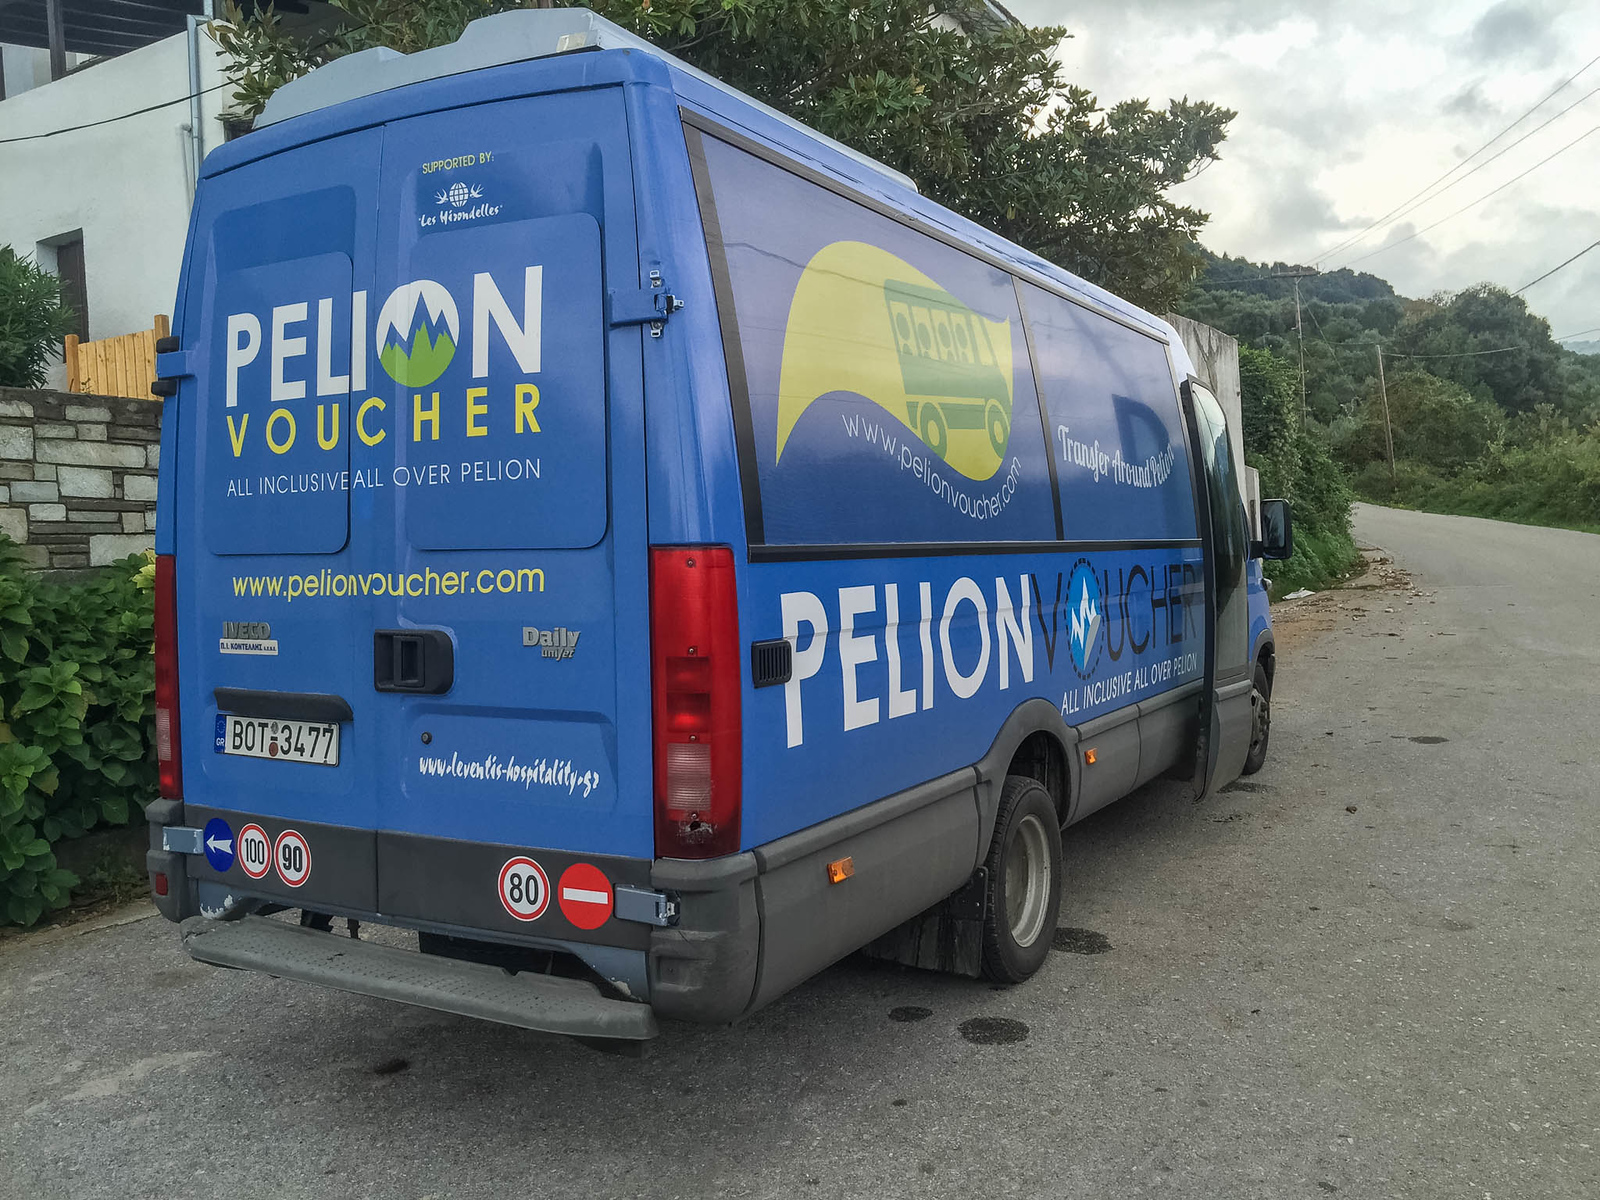 Look for these great tours in Pelion.